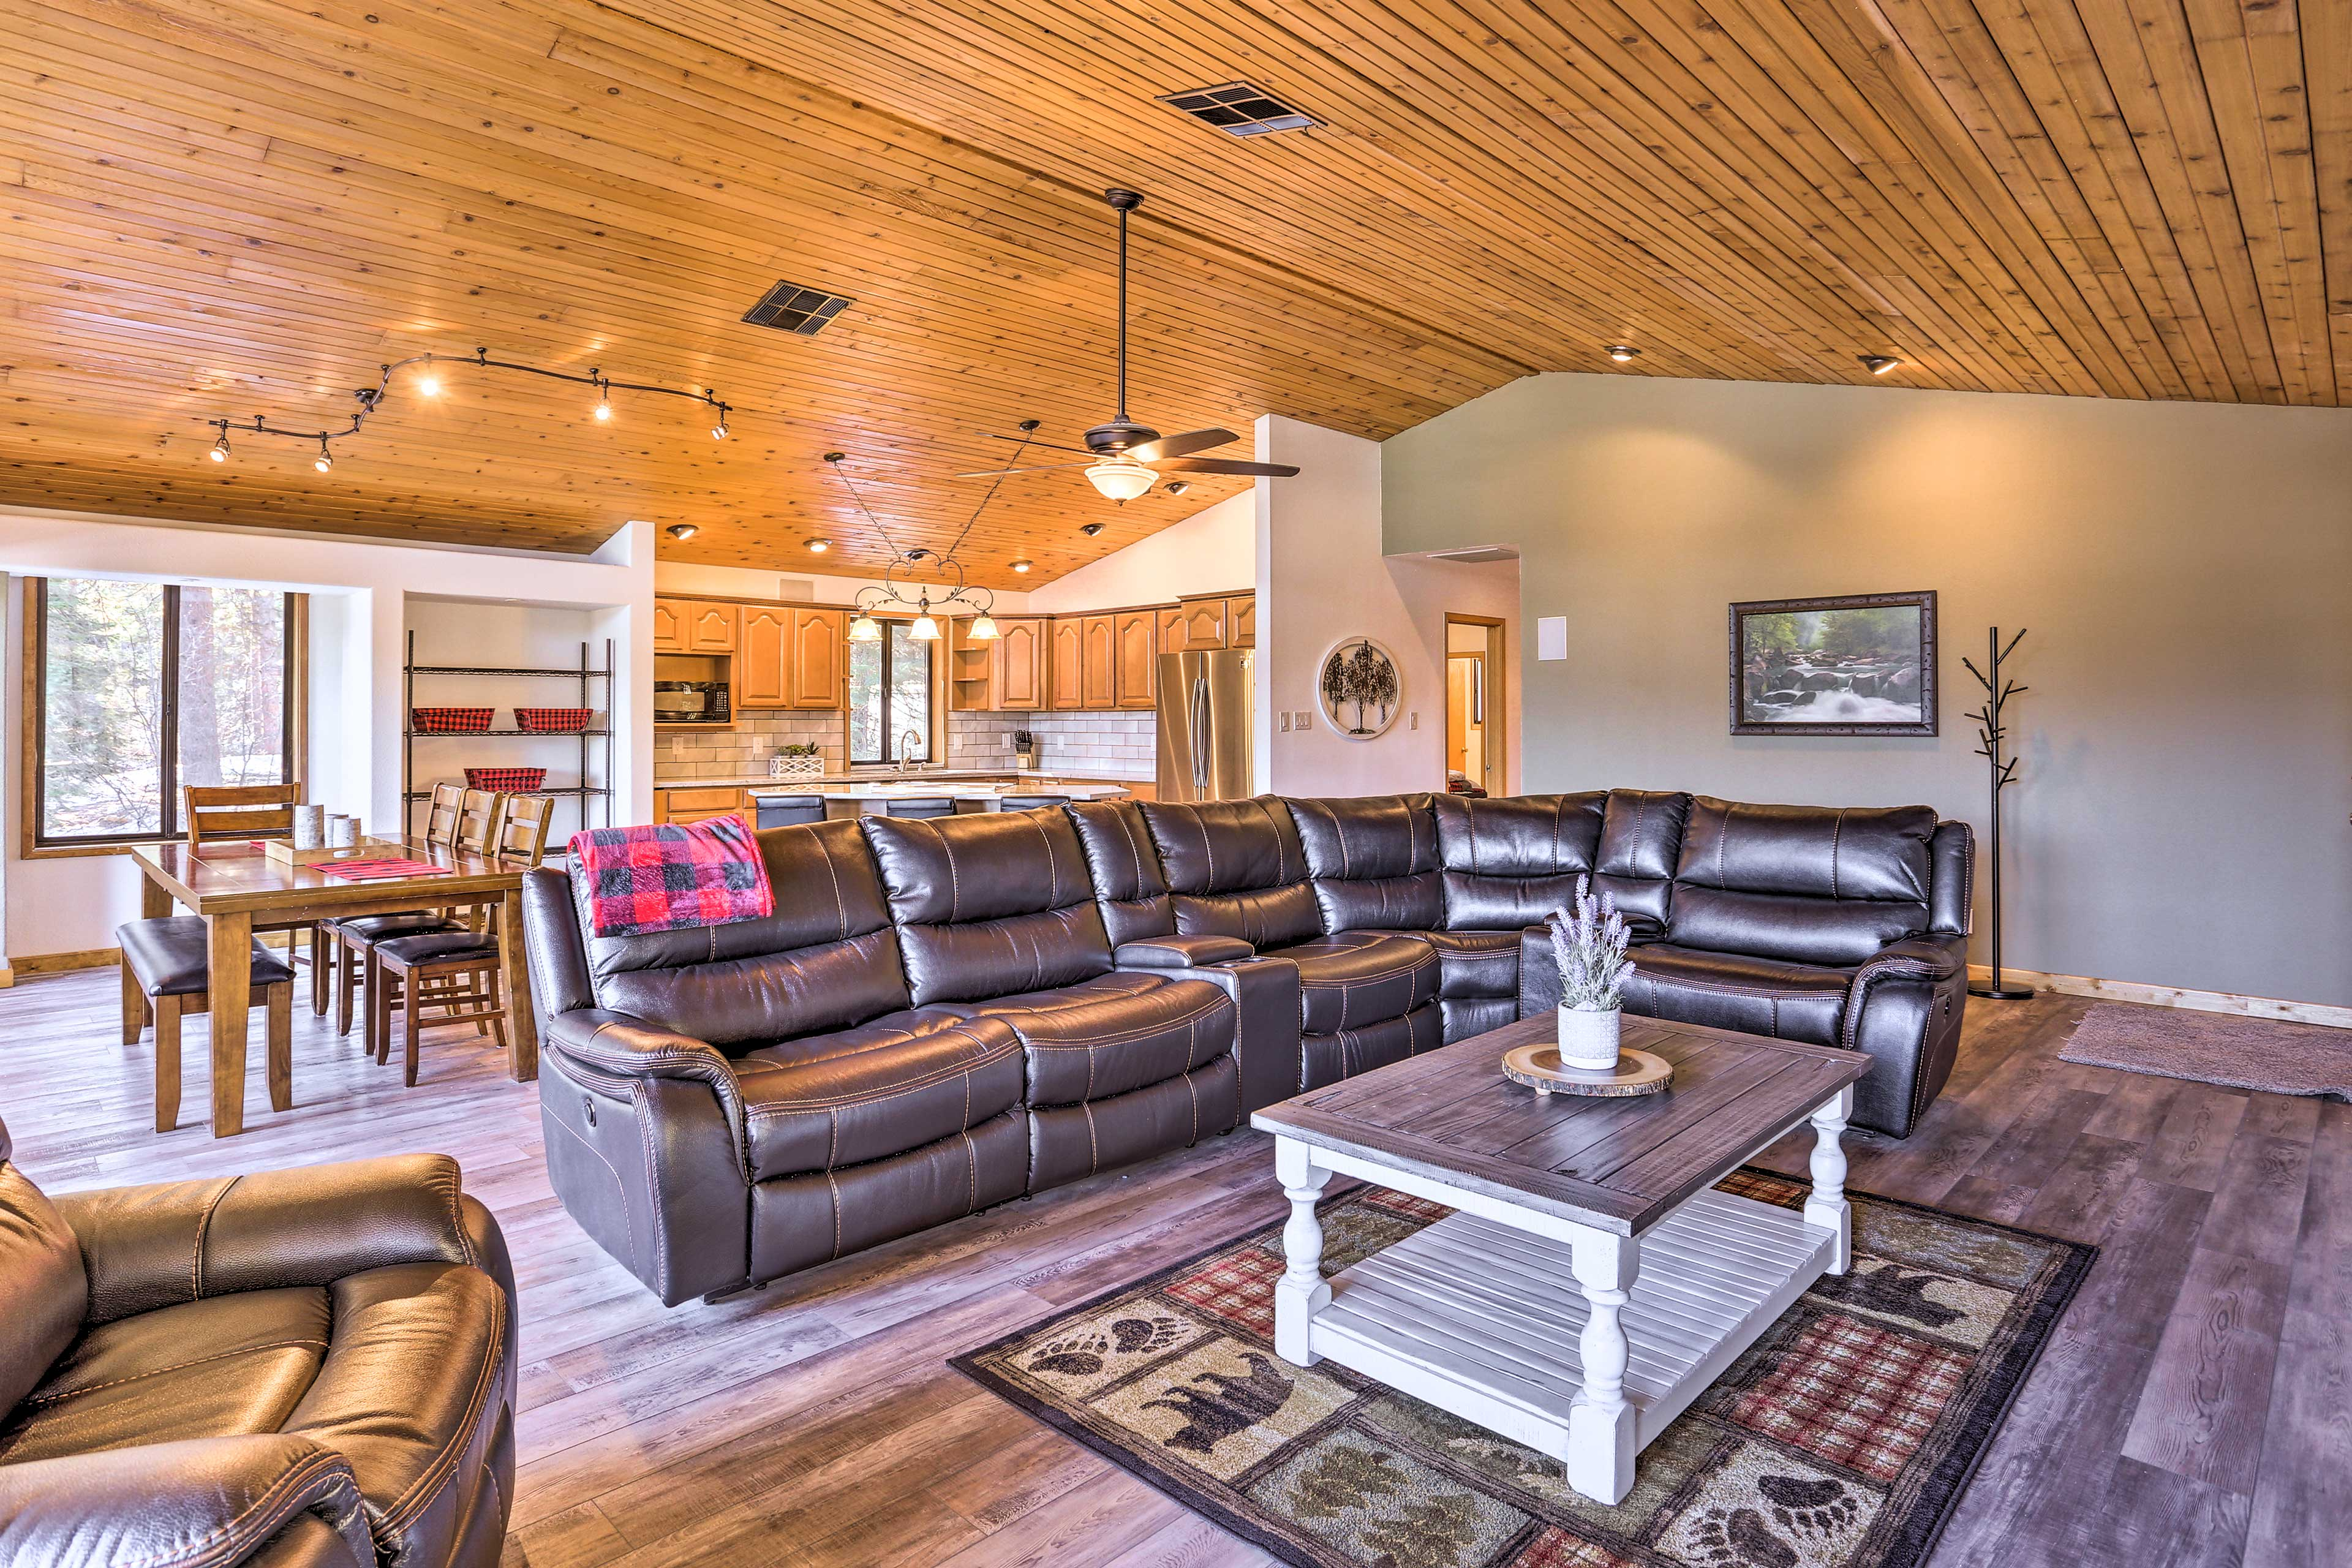 The newly renovated interior features vaulted ceilings and wall-to-wall windows.